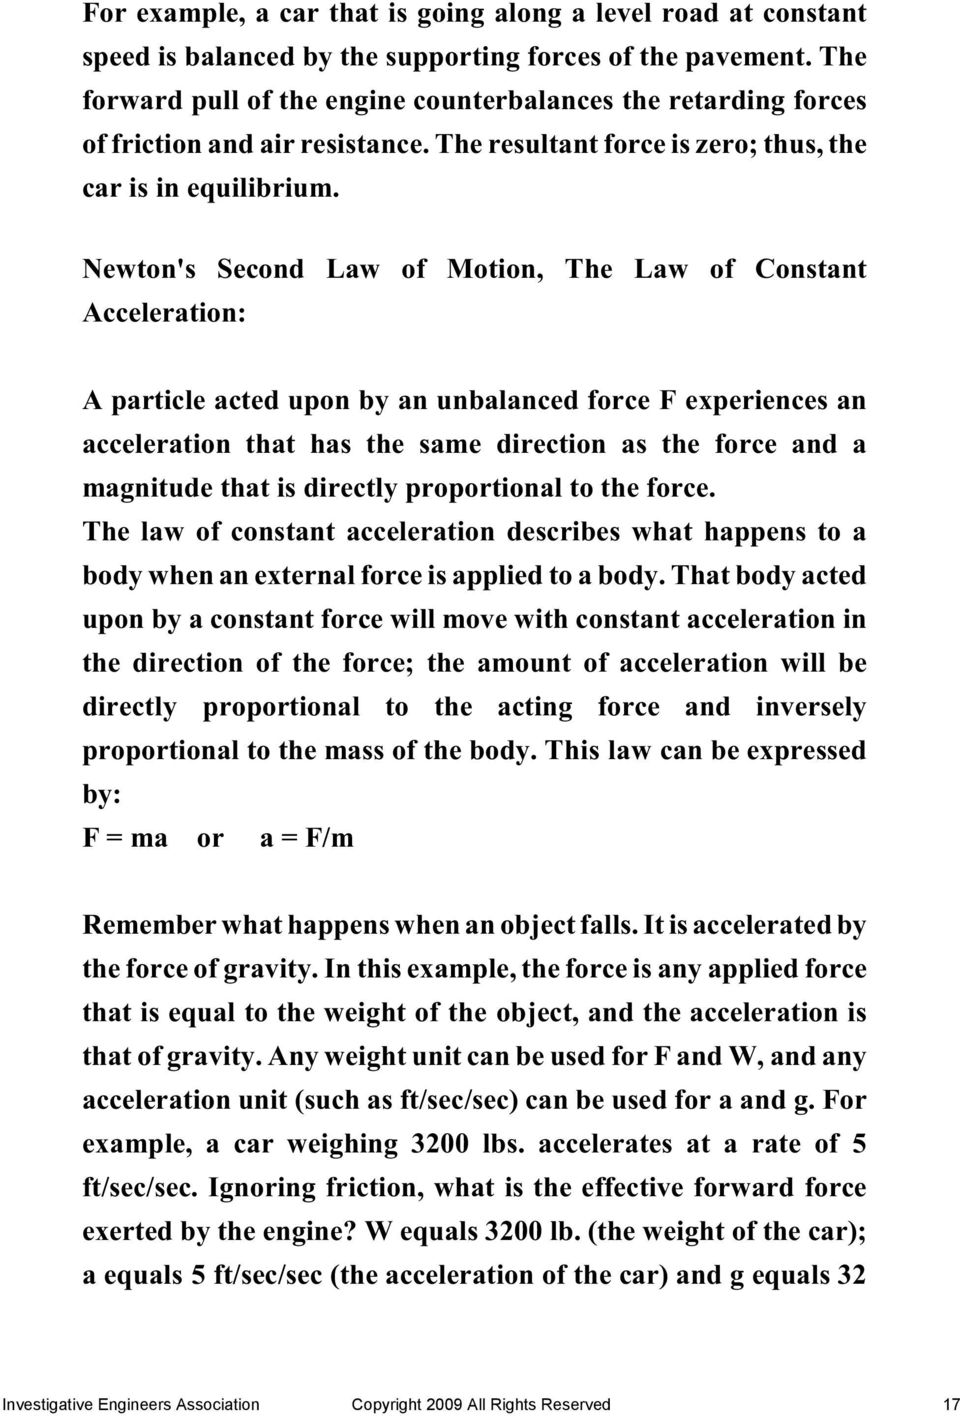 Newton's Second Law of Motion, The Law of Constant Acceleration: A particle acted upon by an unbalanced force F experiences an acceleration that has the same direction as the force and a magnitude